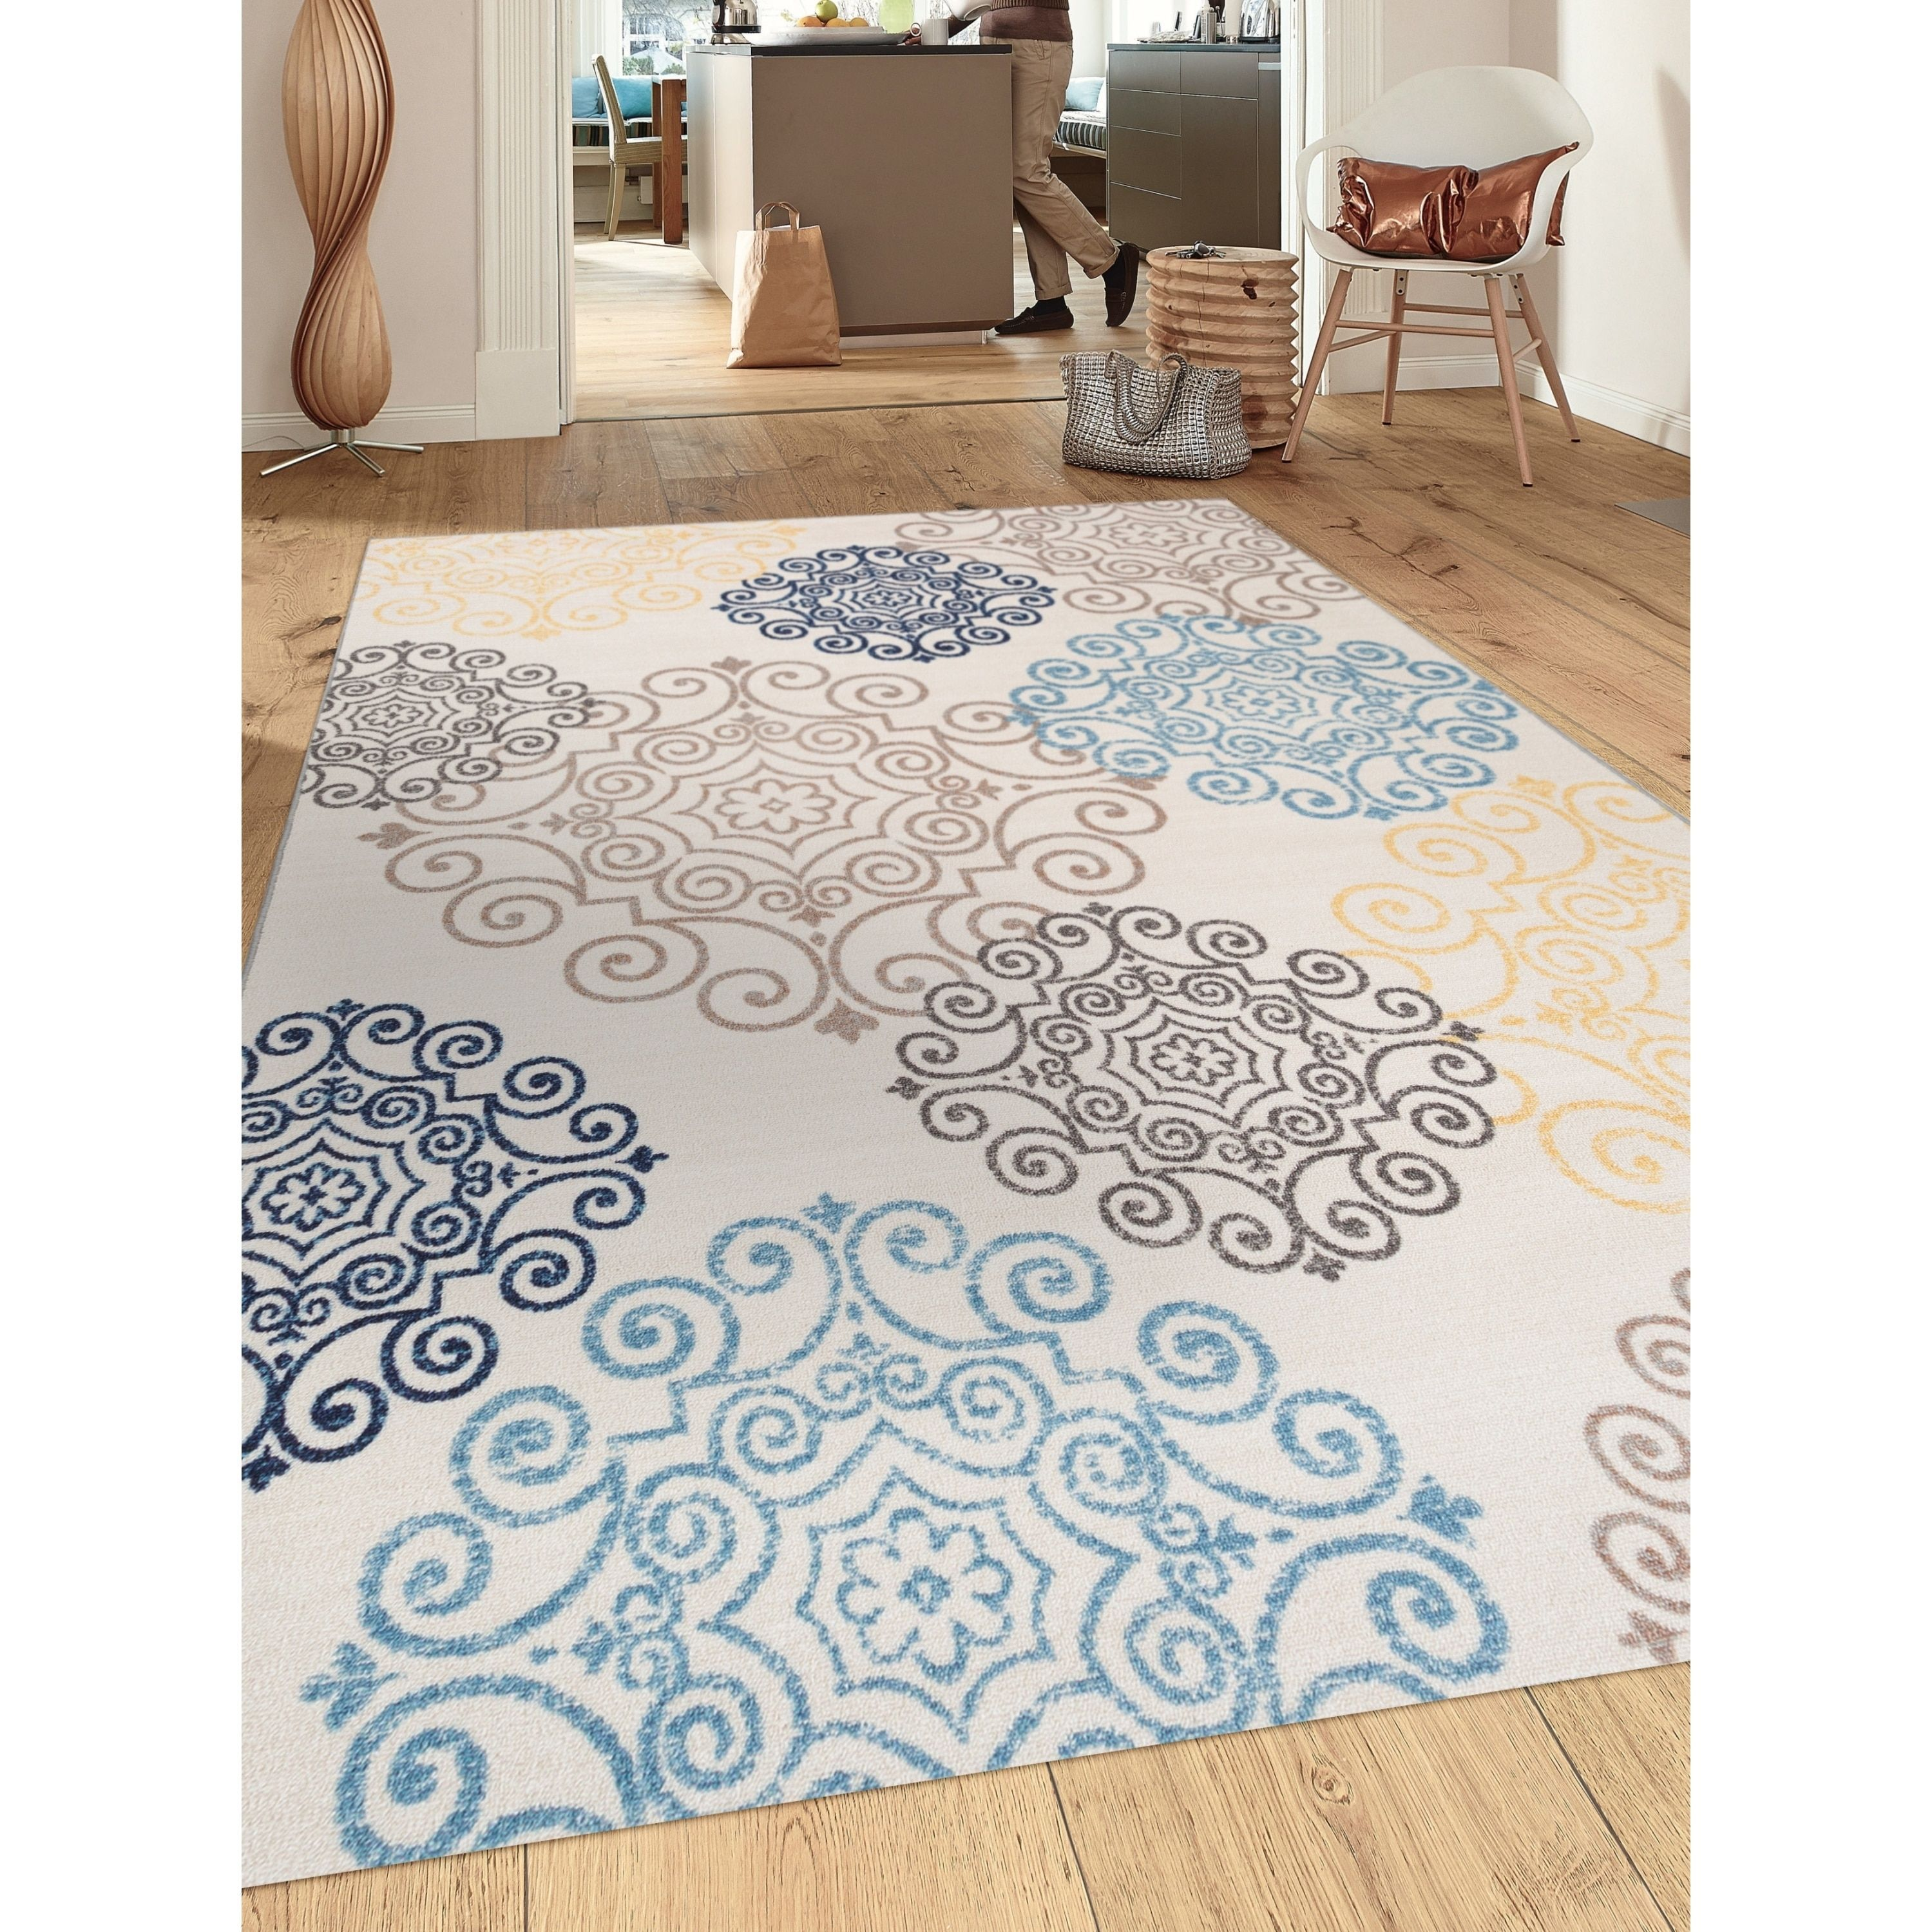 Modern beige multicolored medallion nonslip area rug 710 x 10 508 cream ivory 8x10 size 710 x 10 nylon floral